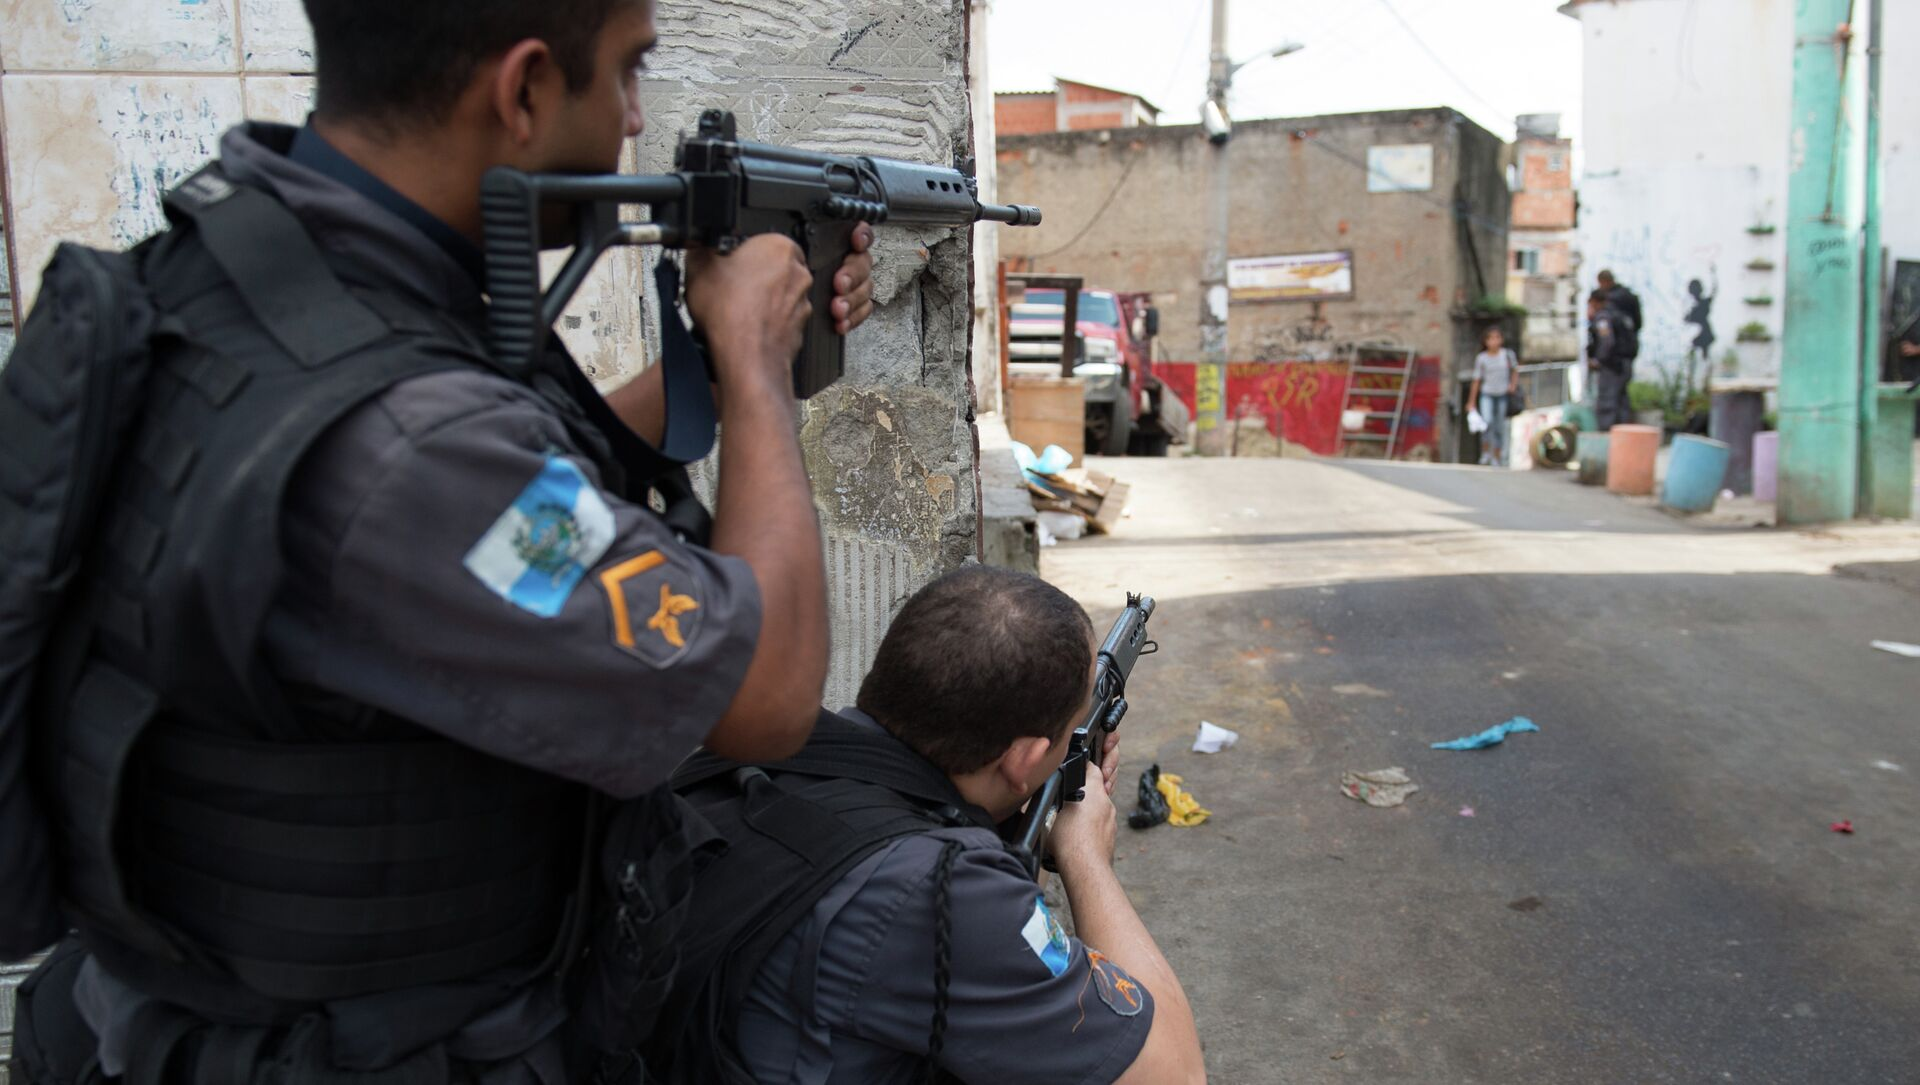 PM militarized police personnel patrol the Chuveirinho favela after an exchange of fire between traffickers and police in the Alemao shantytown complex in Rio de Janeiro, Brazil, on March 24 , 2015 - Sputnik Italia, 1920, 07.05.2021